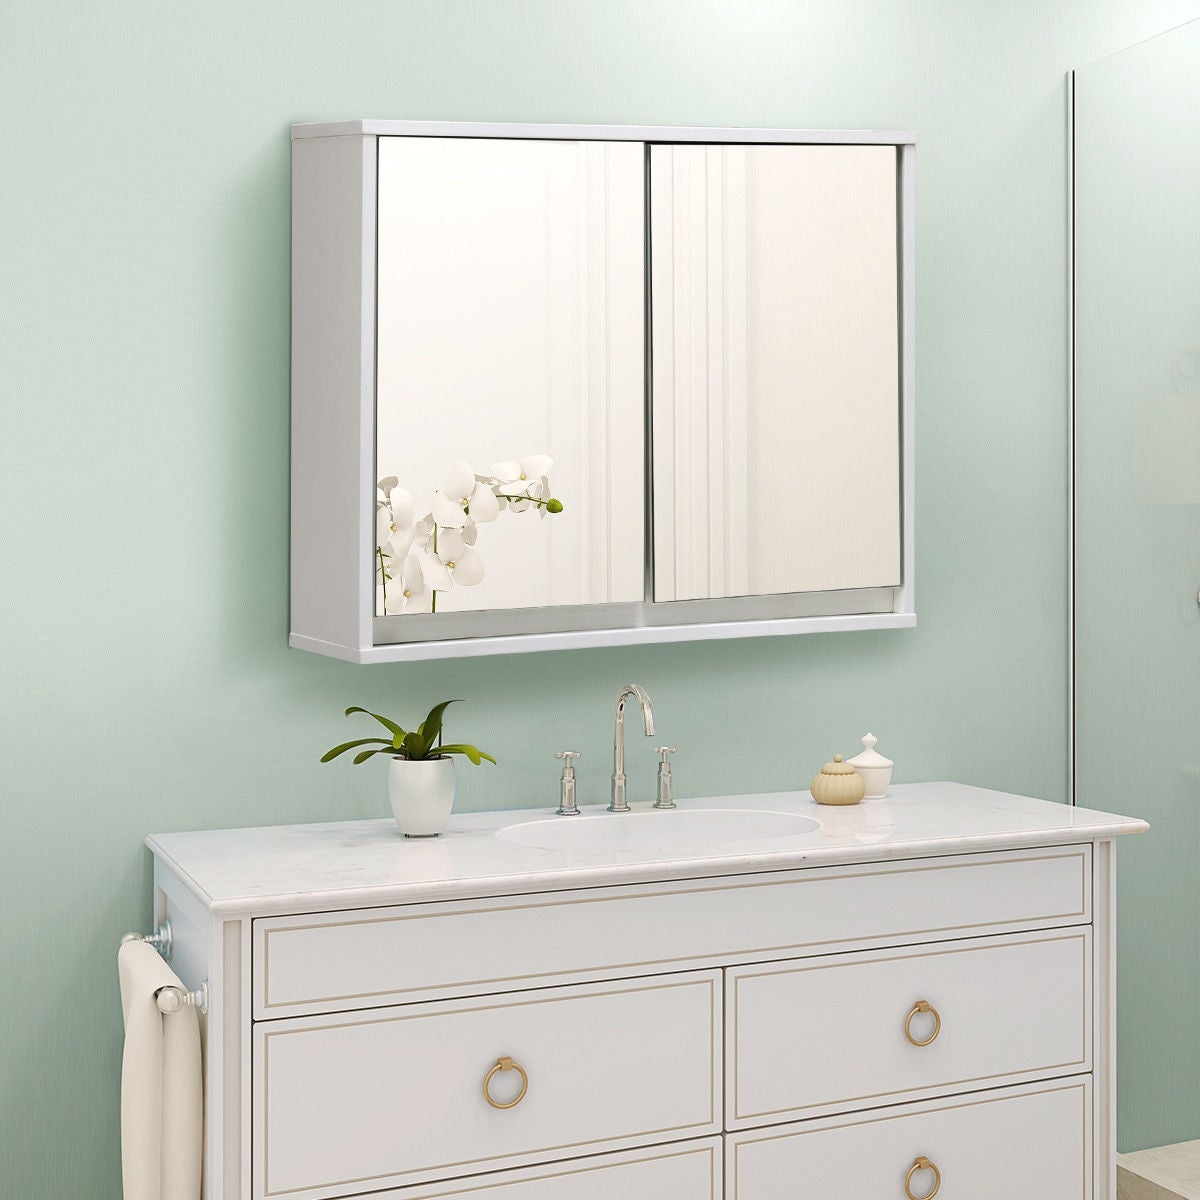 Costway Wall Mounted Bathroom Storage Cabinet Double Mirror Door Organizer Shelf White